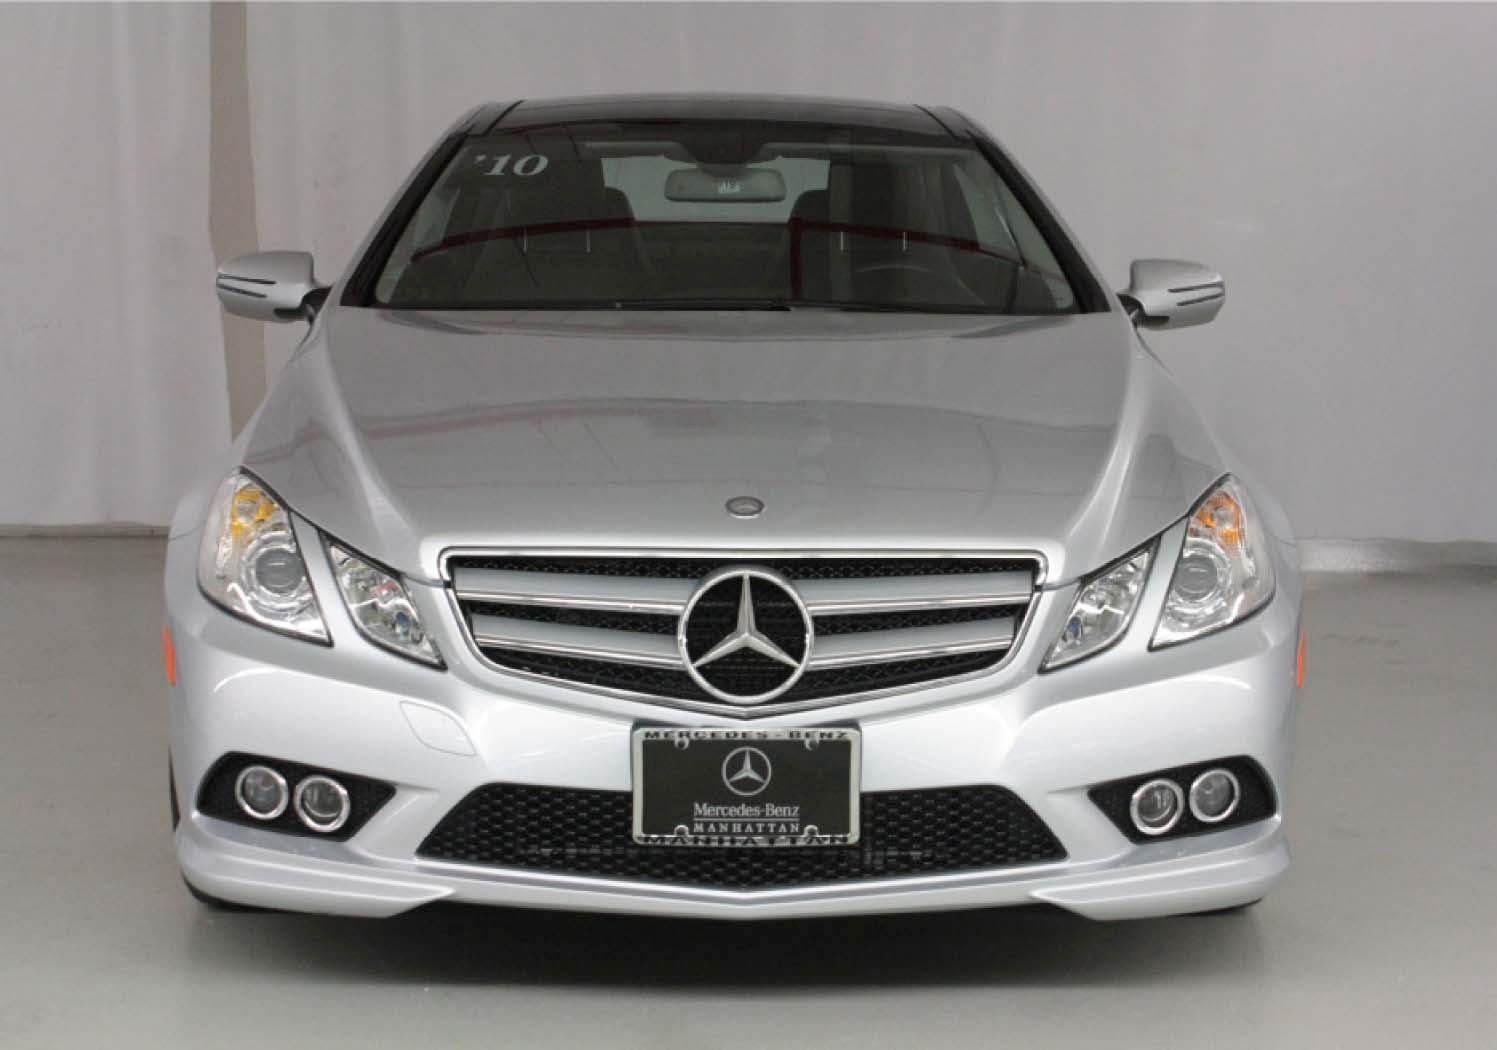 2010 mercedes benz e550 stock 2010mercedes for sale near new york ny ny mercedes benz dealer. Black Bedroom Furniture Sets. Home Design Ideas